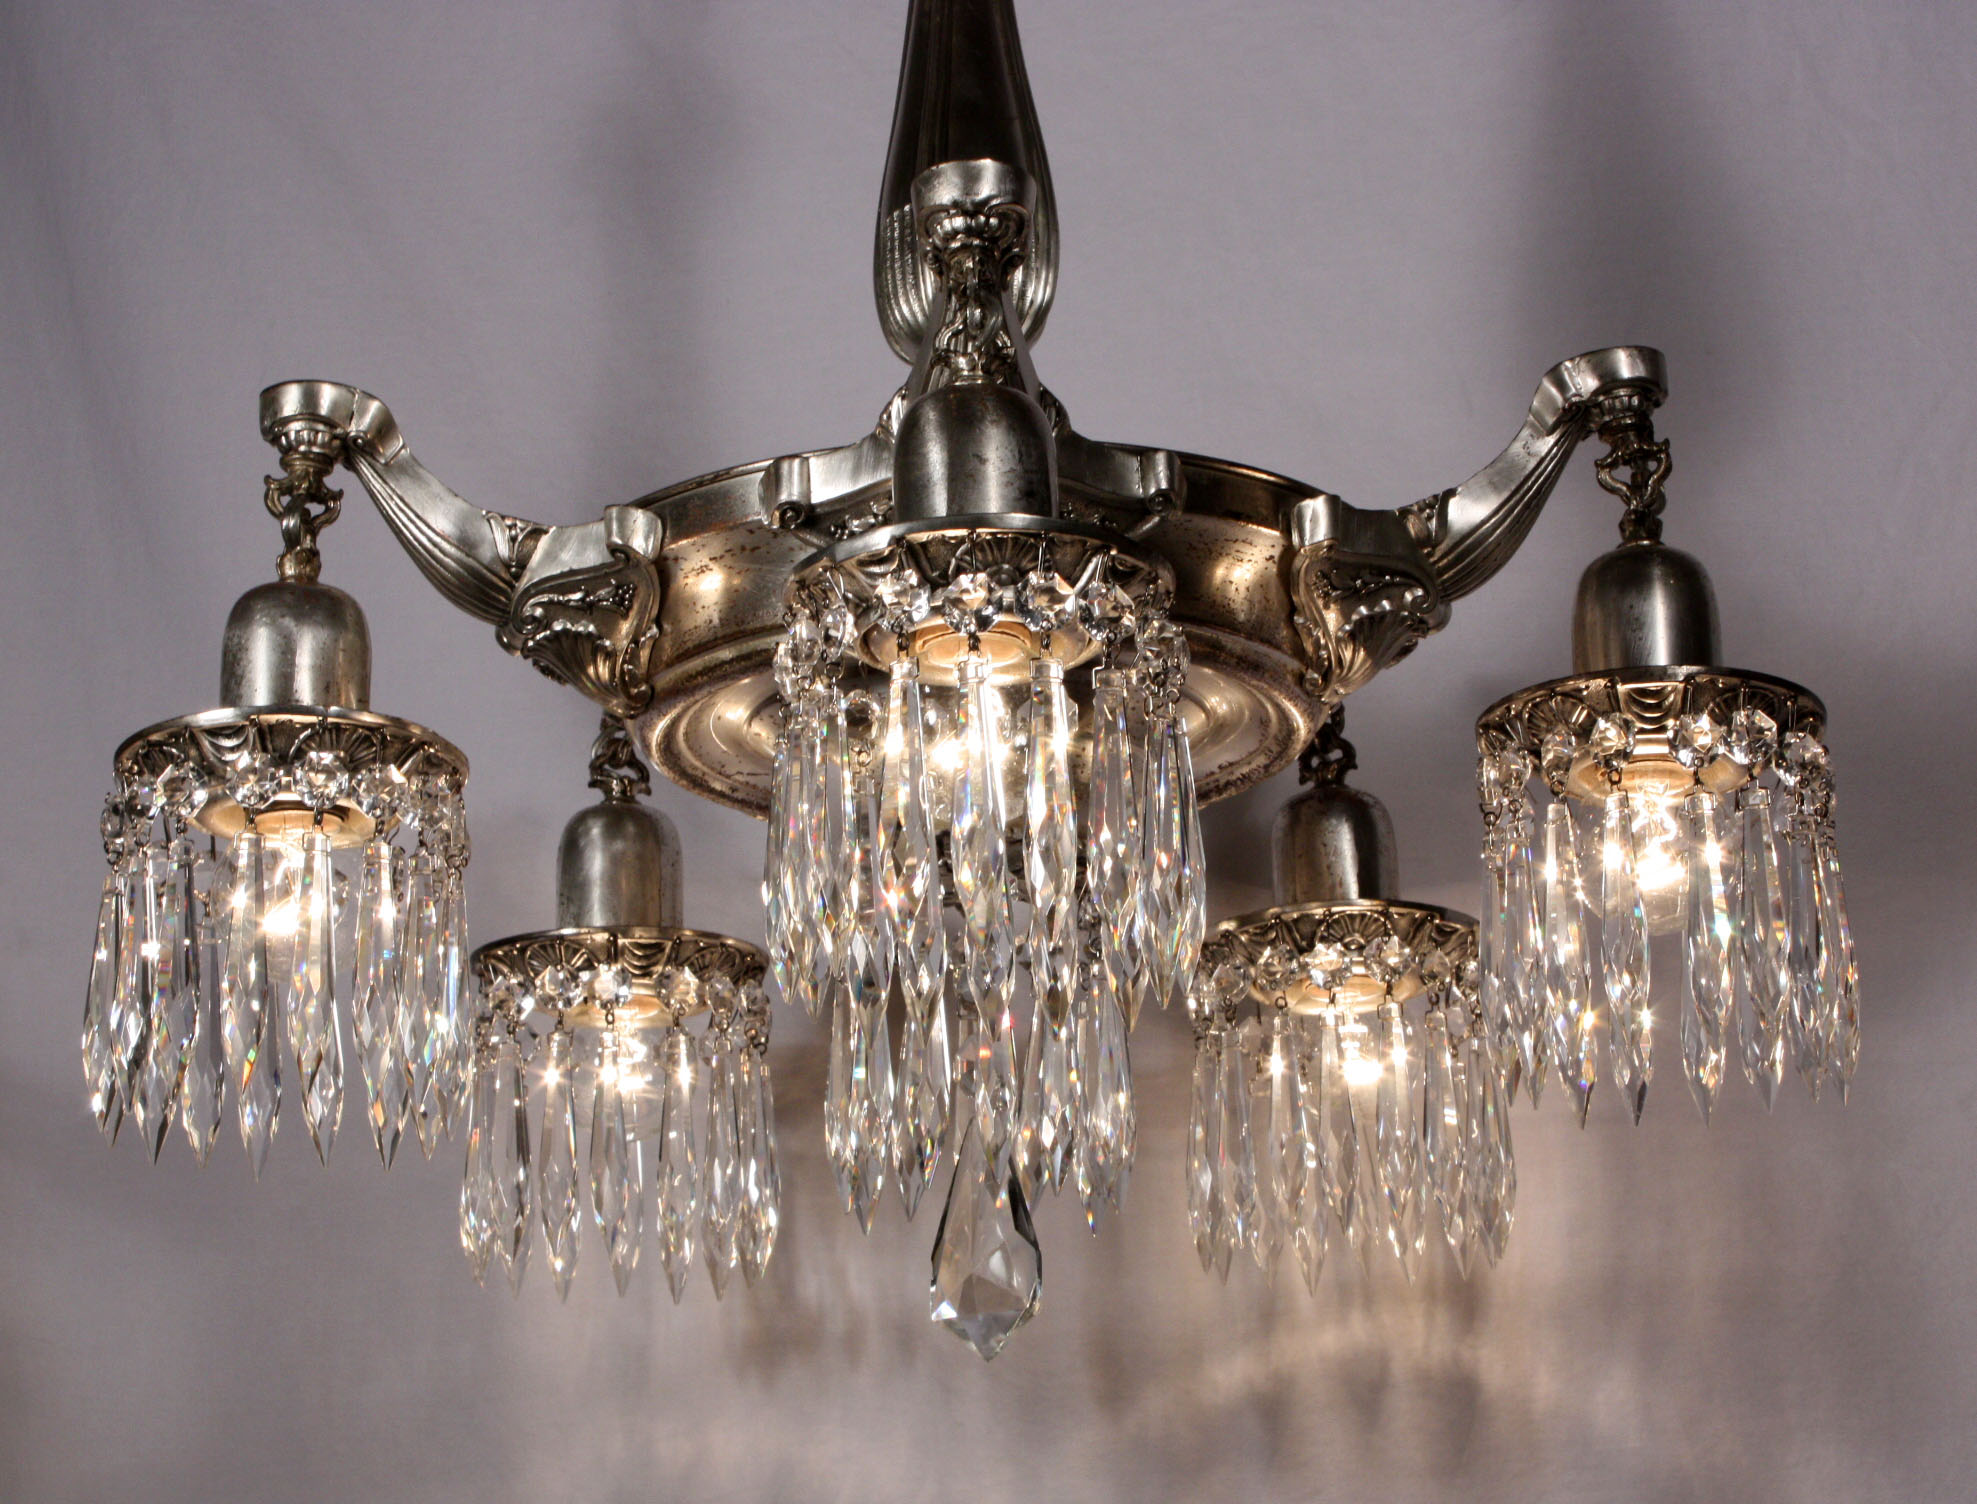 Stunning Antique Neoclassical Five-Light Silver Plated